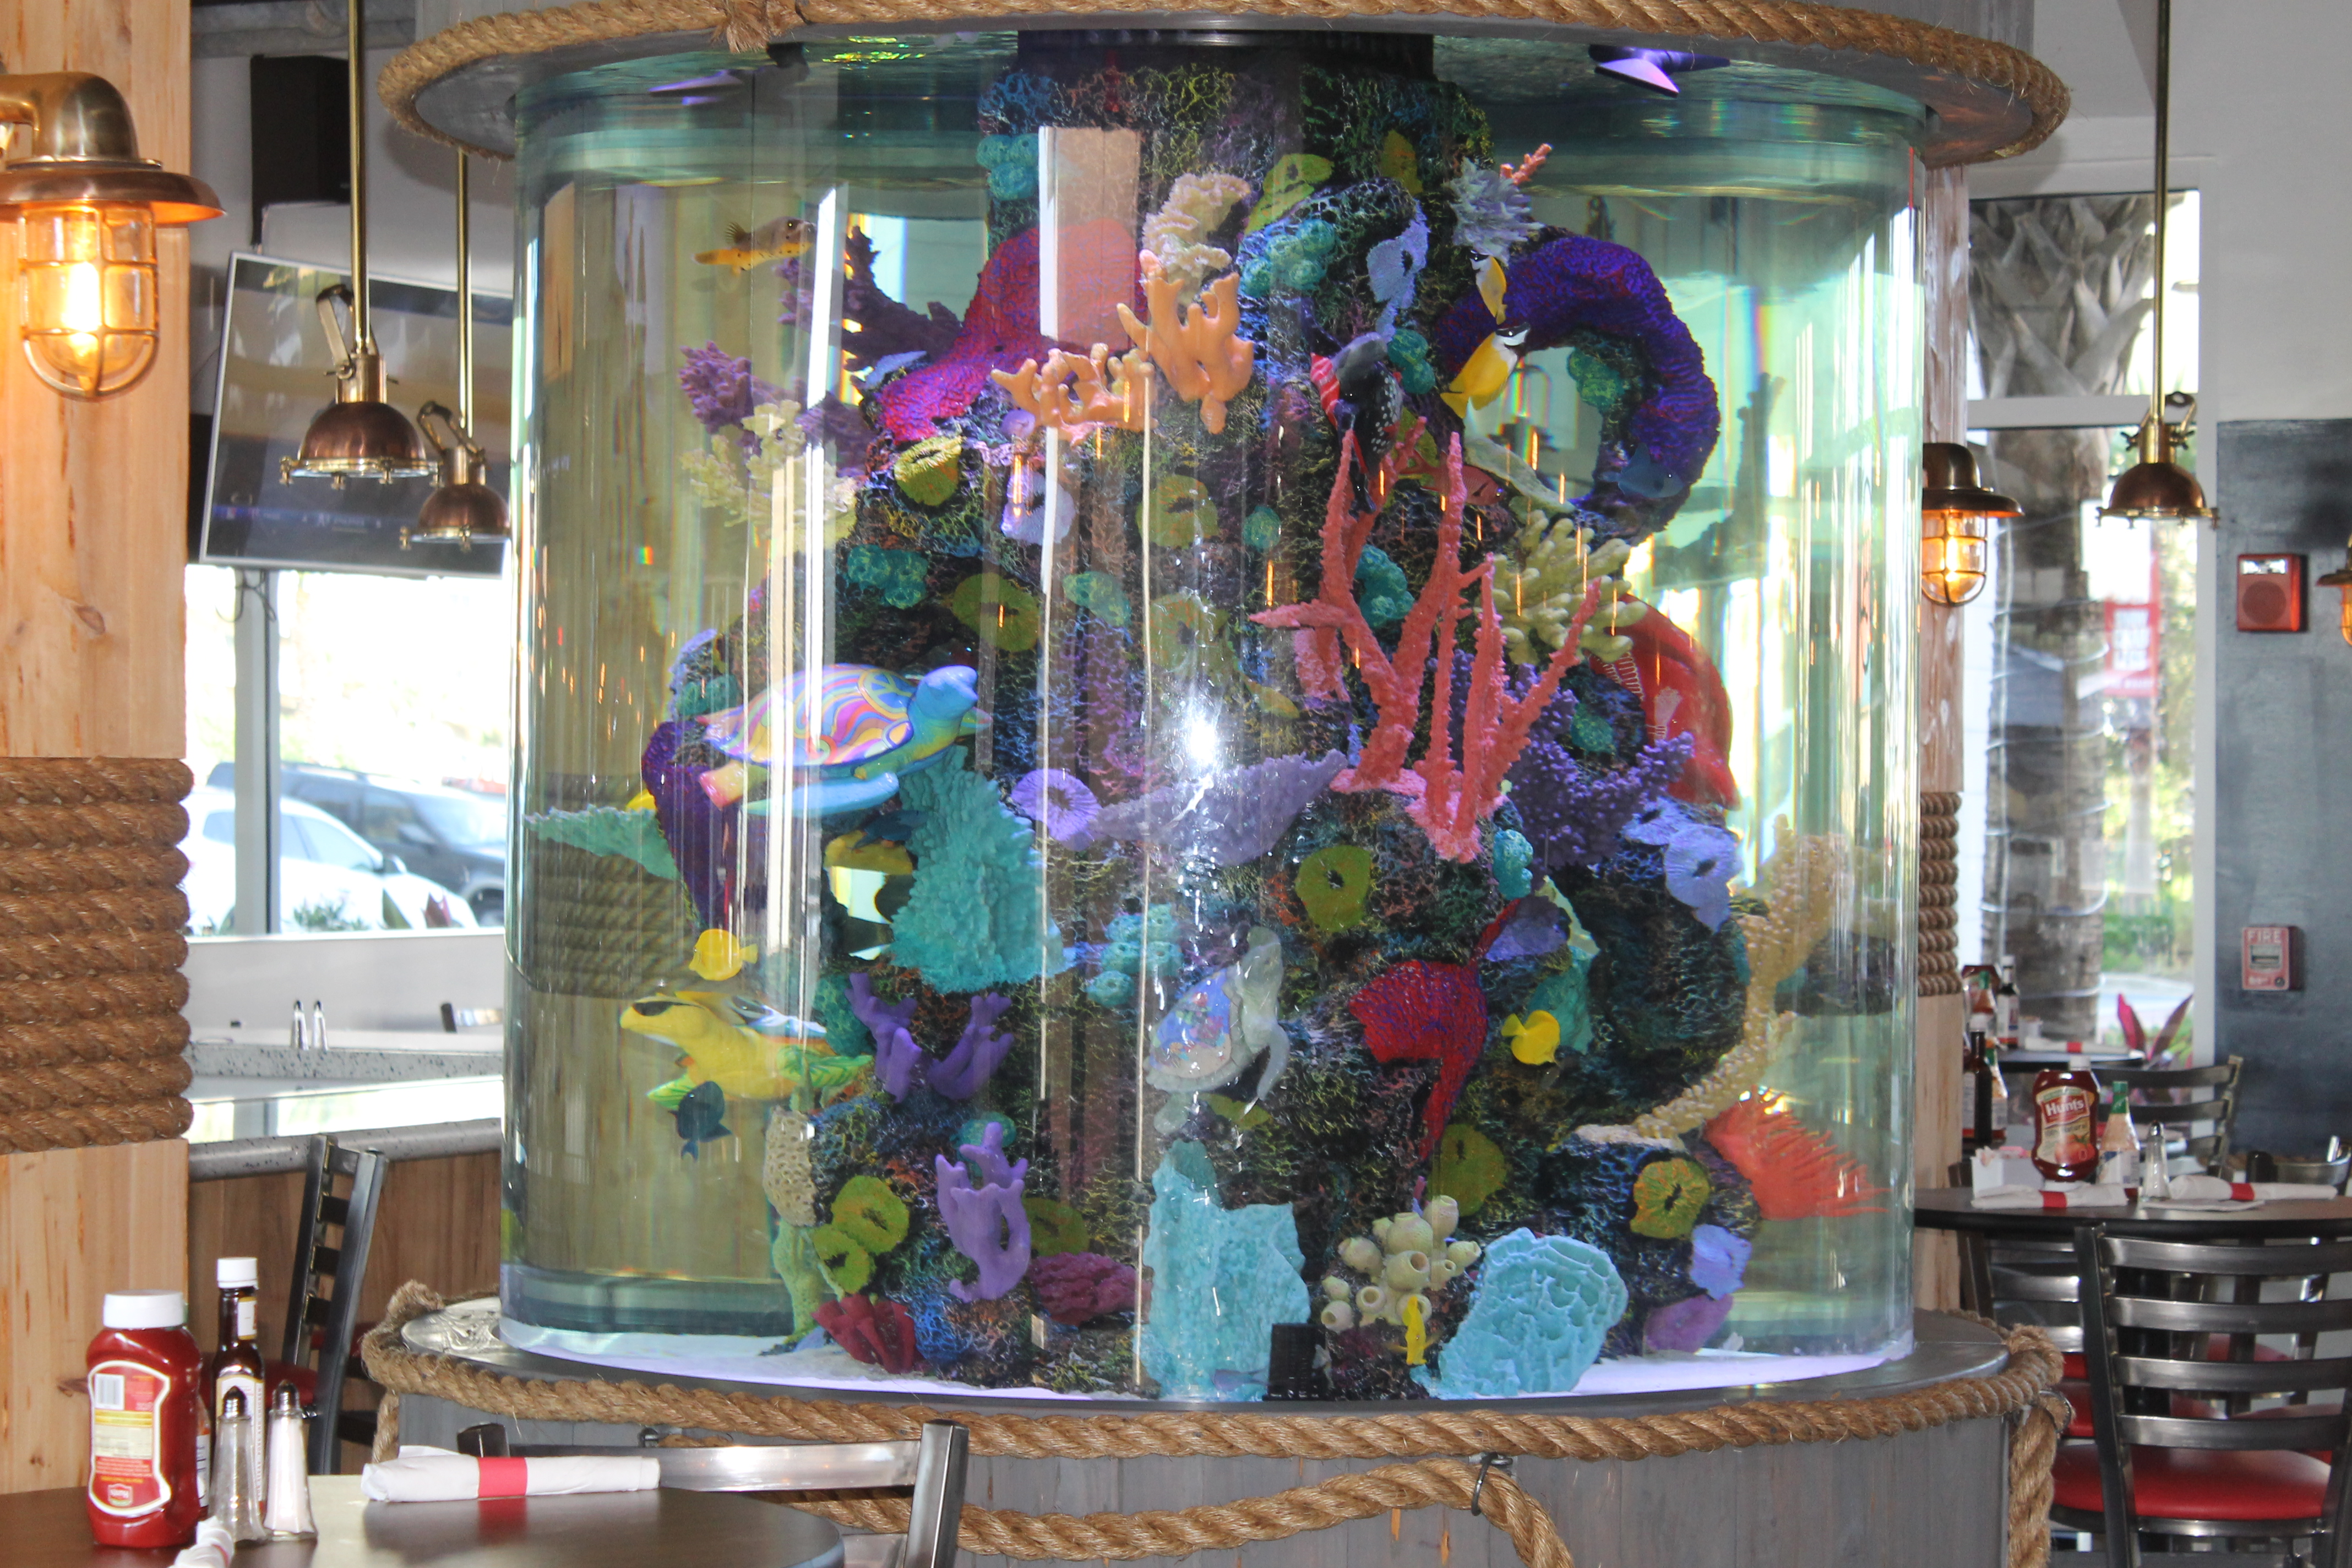 Fish Tank from Tanked TV Show